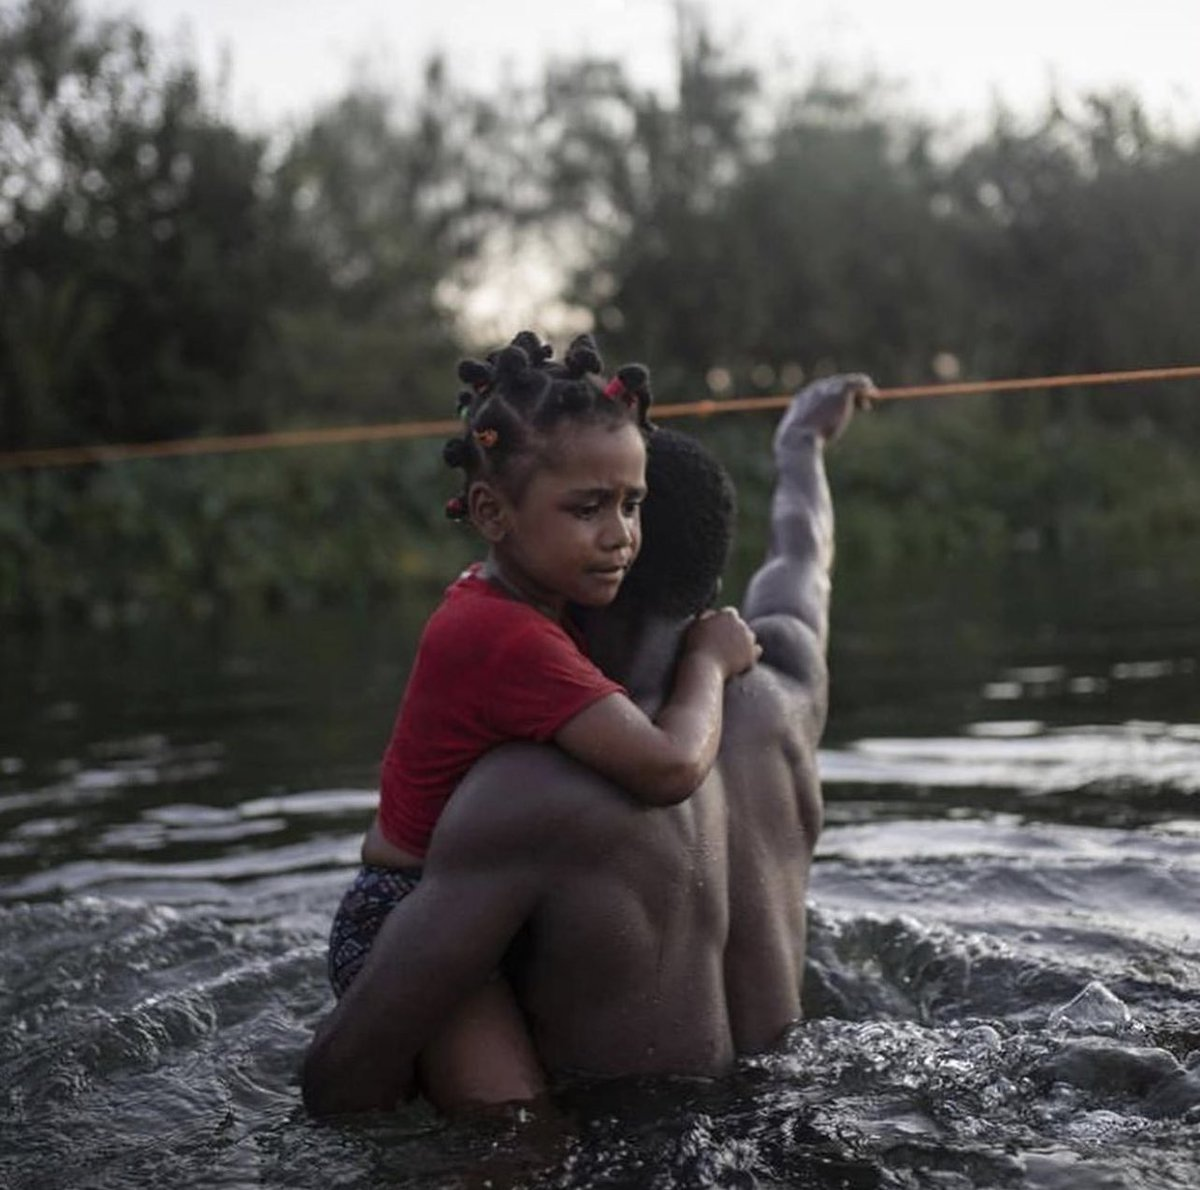 Haitians at our borders deserve asylum — PERIOD. and we are owed so much more. billions of dollars. I feel angry — it's a constant emotion — we have been robbed for centuries. I call on our great ancestors to aid & assist. This country would have us sink into ocean. 👏🏿🇭🇹